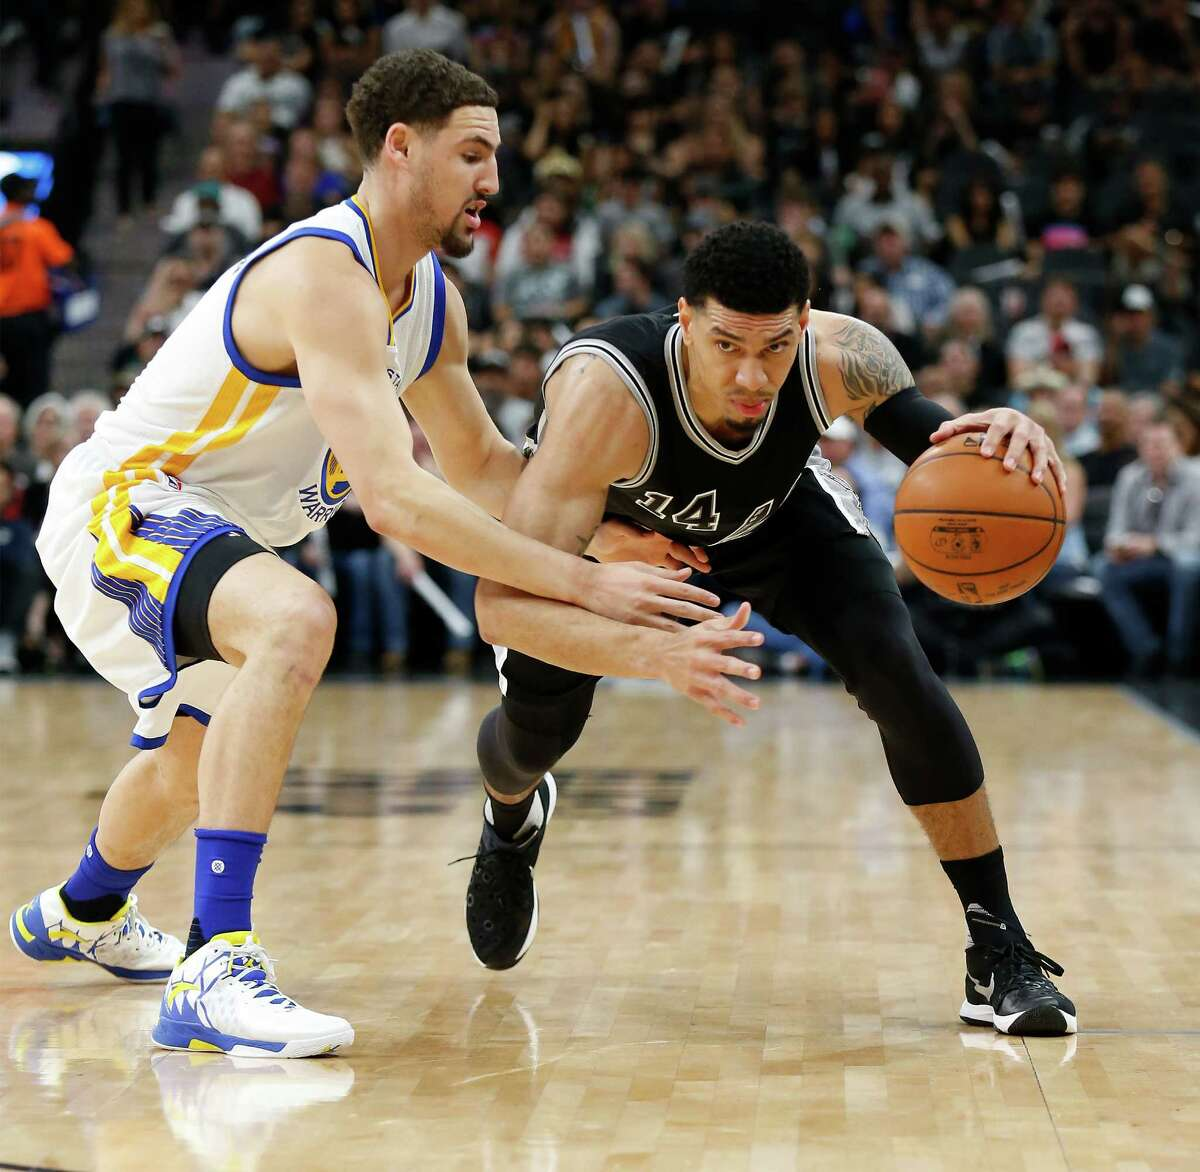 Spurs' Danny Green (14) attempt to drive around Golden State Warriors' Klay Thompson (11) at the AT&T Center on Sunday, Apr. 10, 2016.